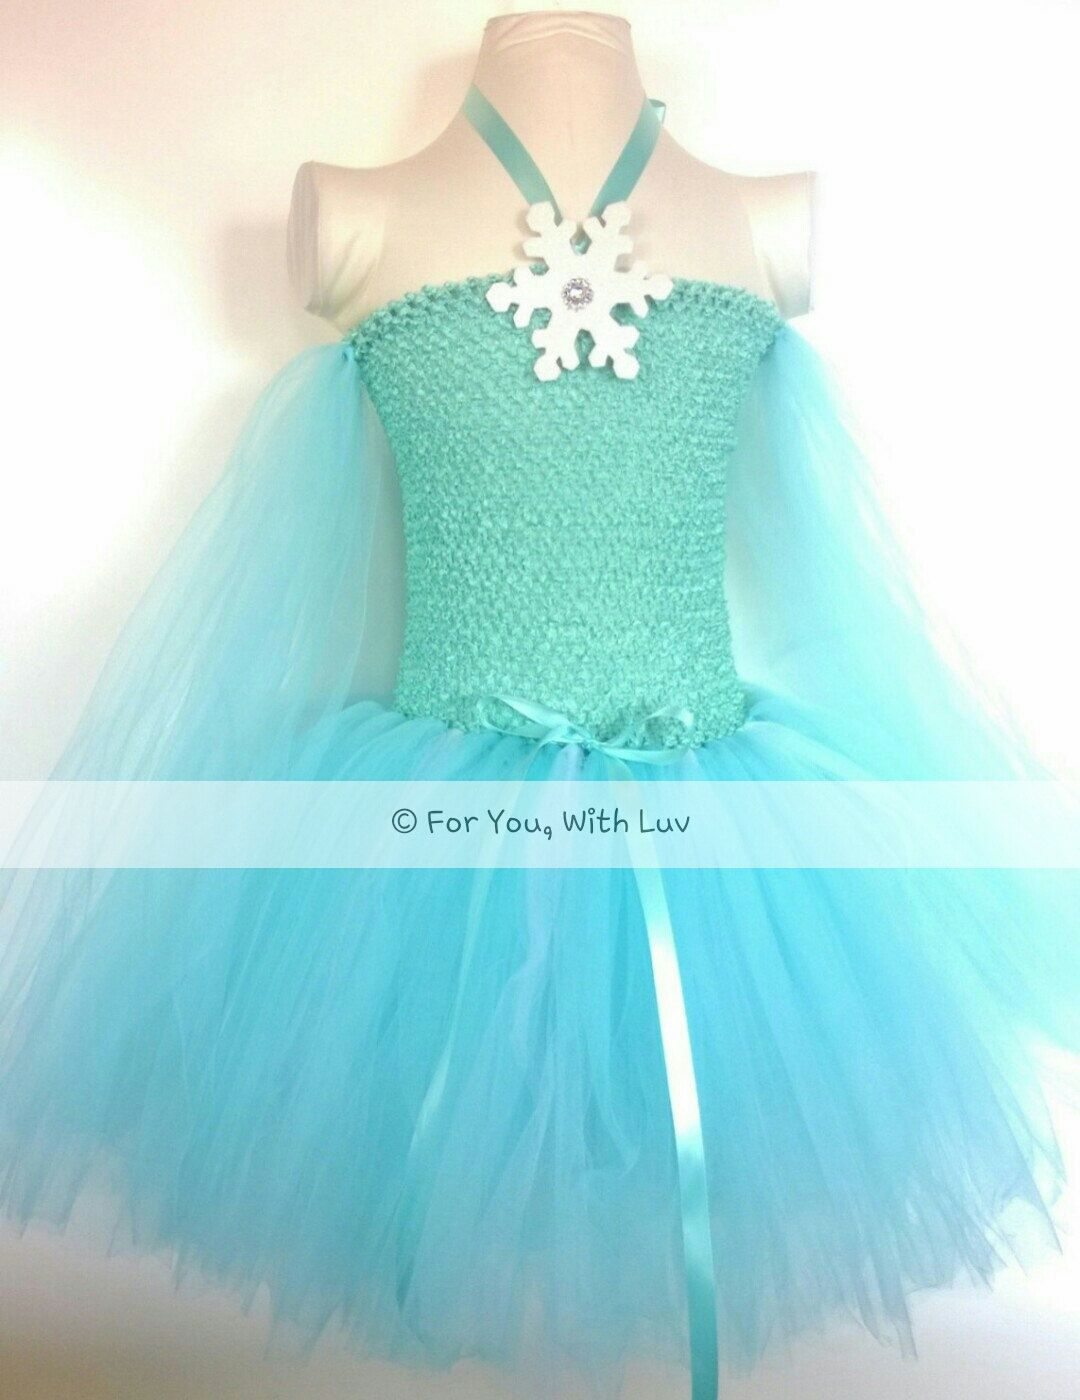 frozen party outfit ideas adults - Google Search | Frozen ...